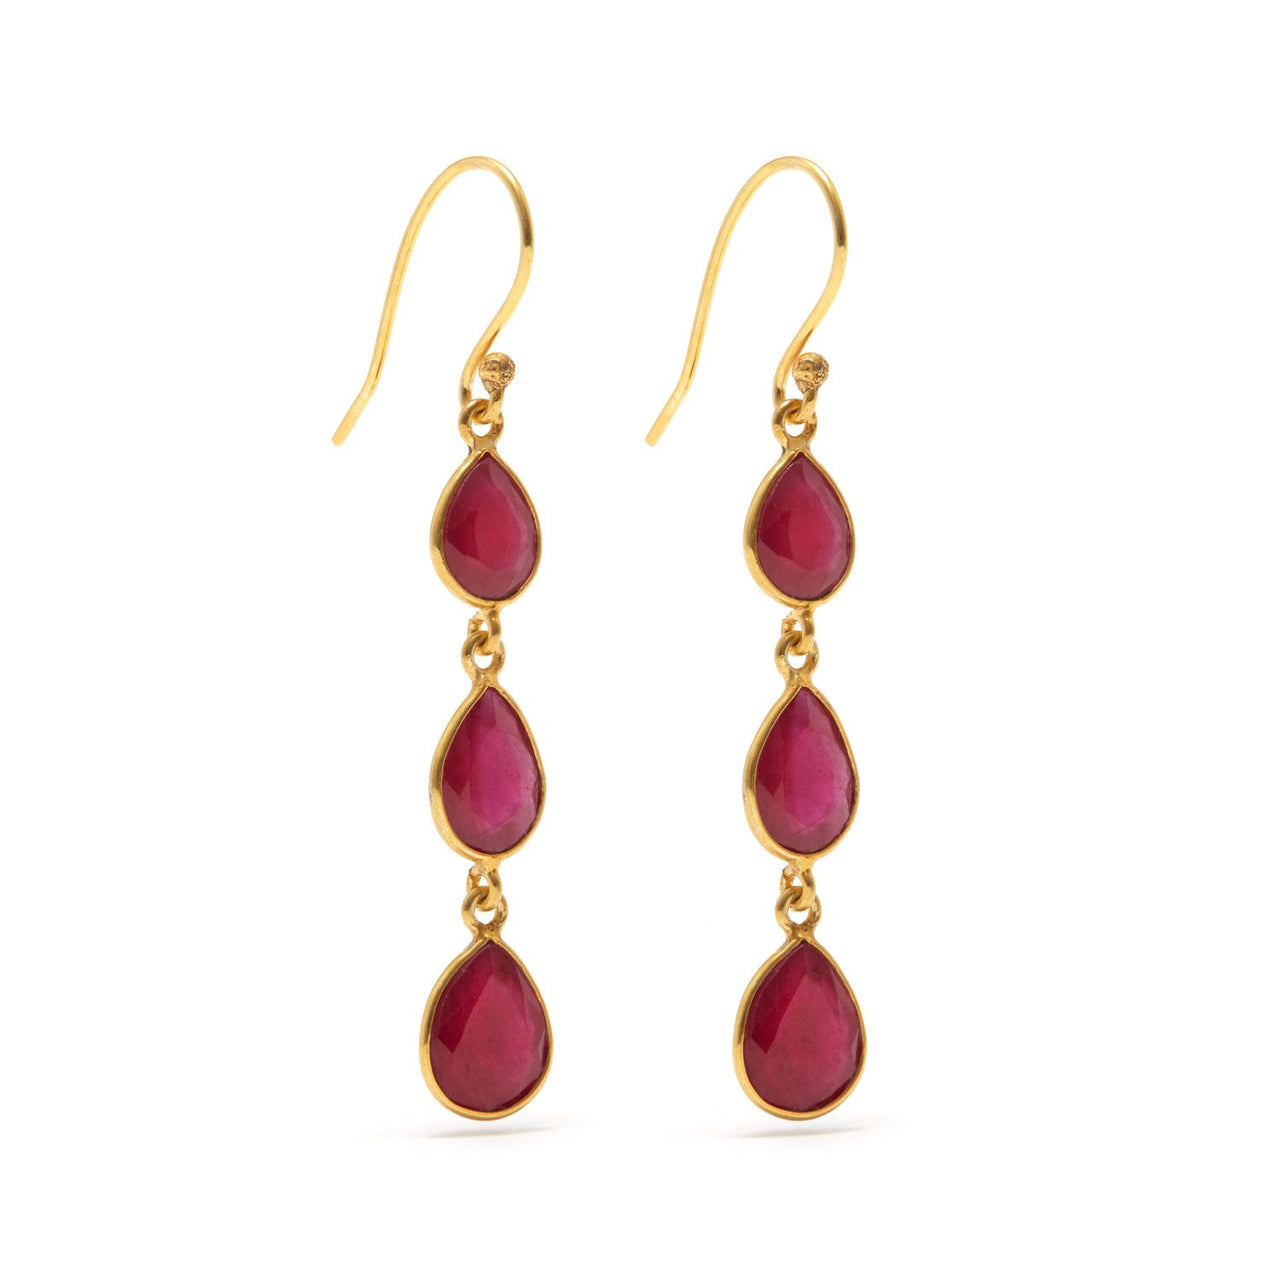 Jaipur Atelier Ruby Rush 3 Petit Drop Earrings